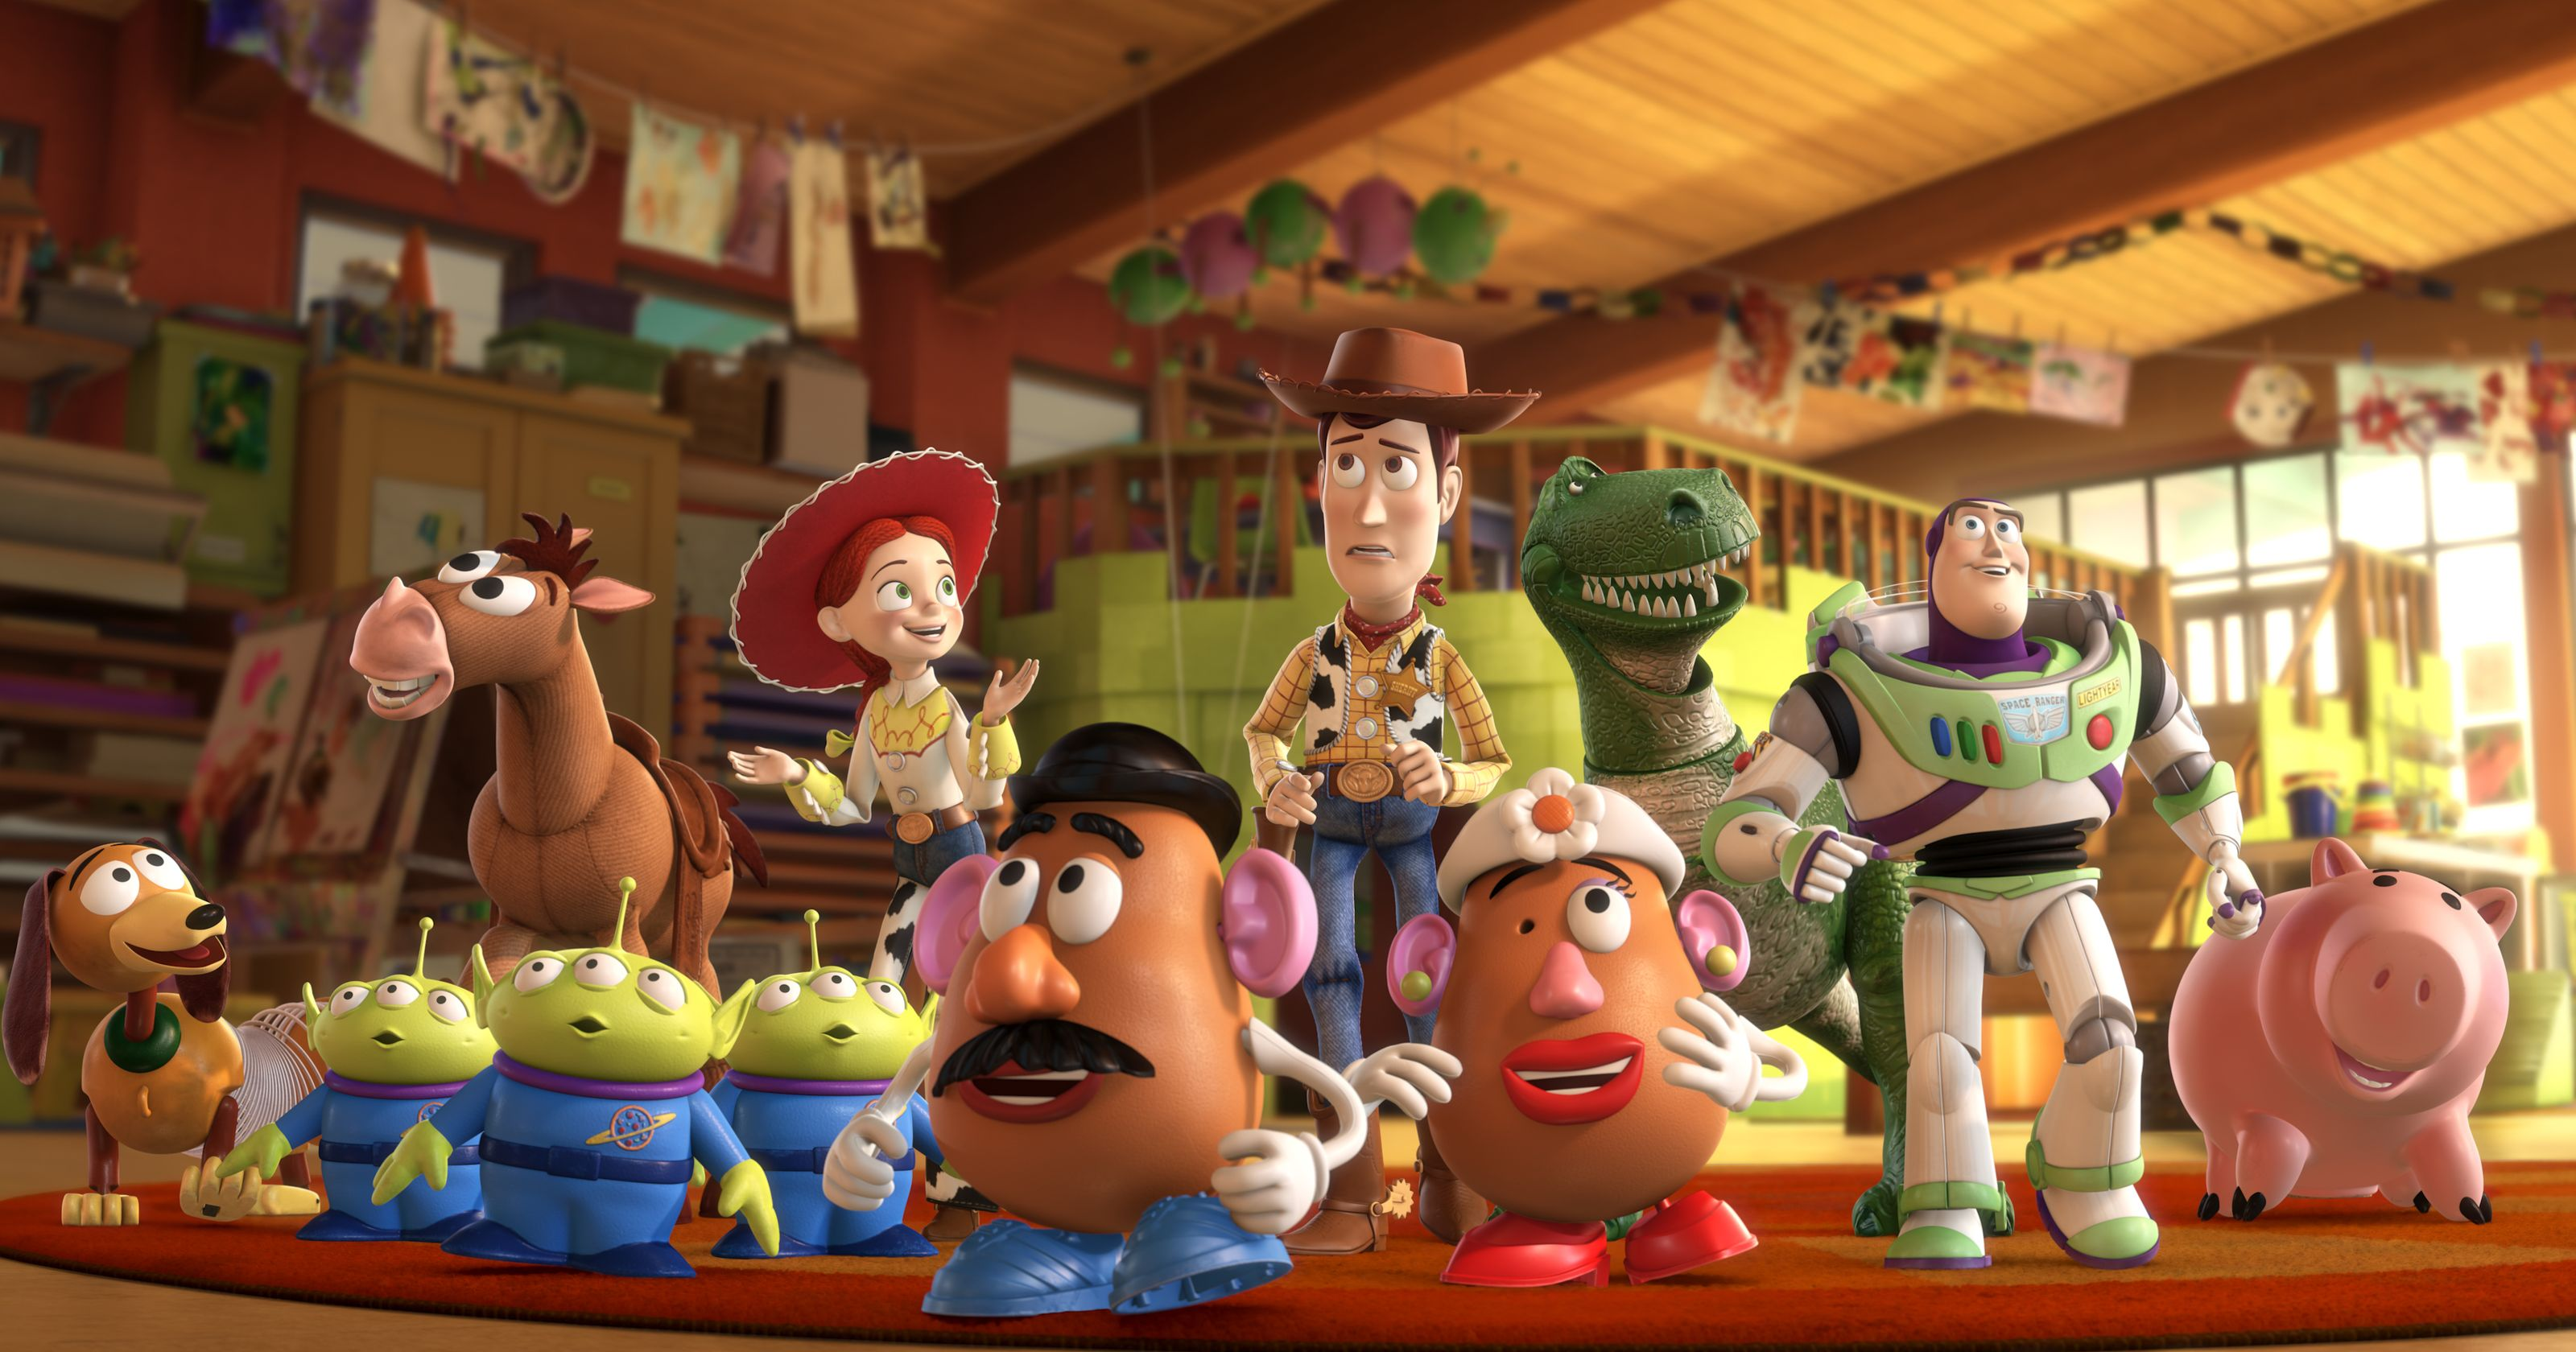 There Will Be A Toy Story 4 : Here s every single quot toy story character in one picture